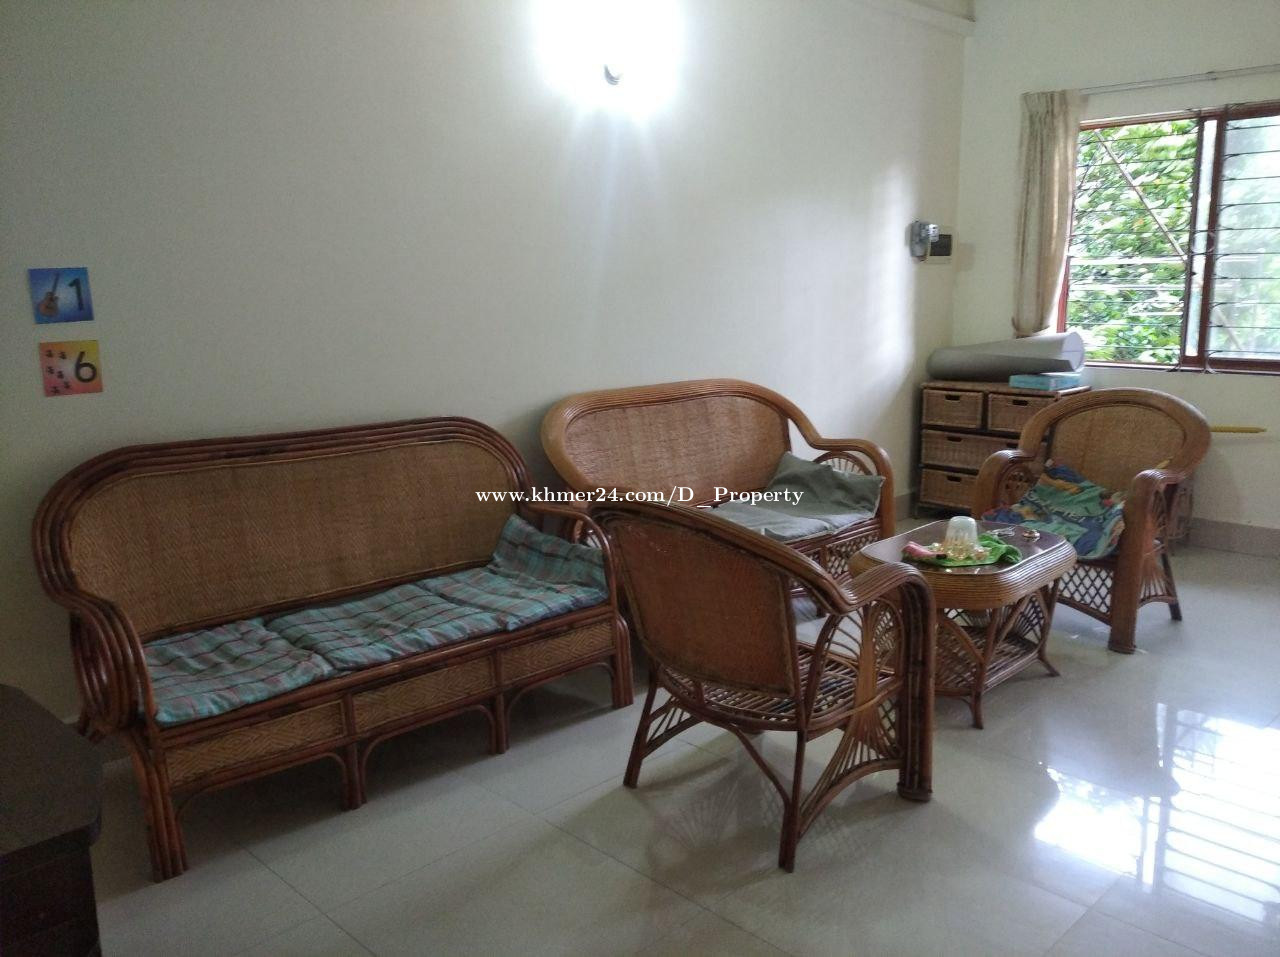 2 Bedrooms Apartment for Rent (Tuol Kork)